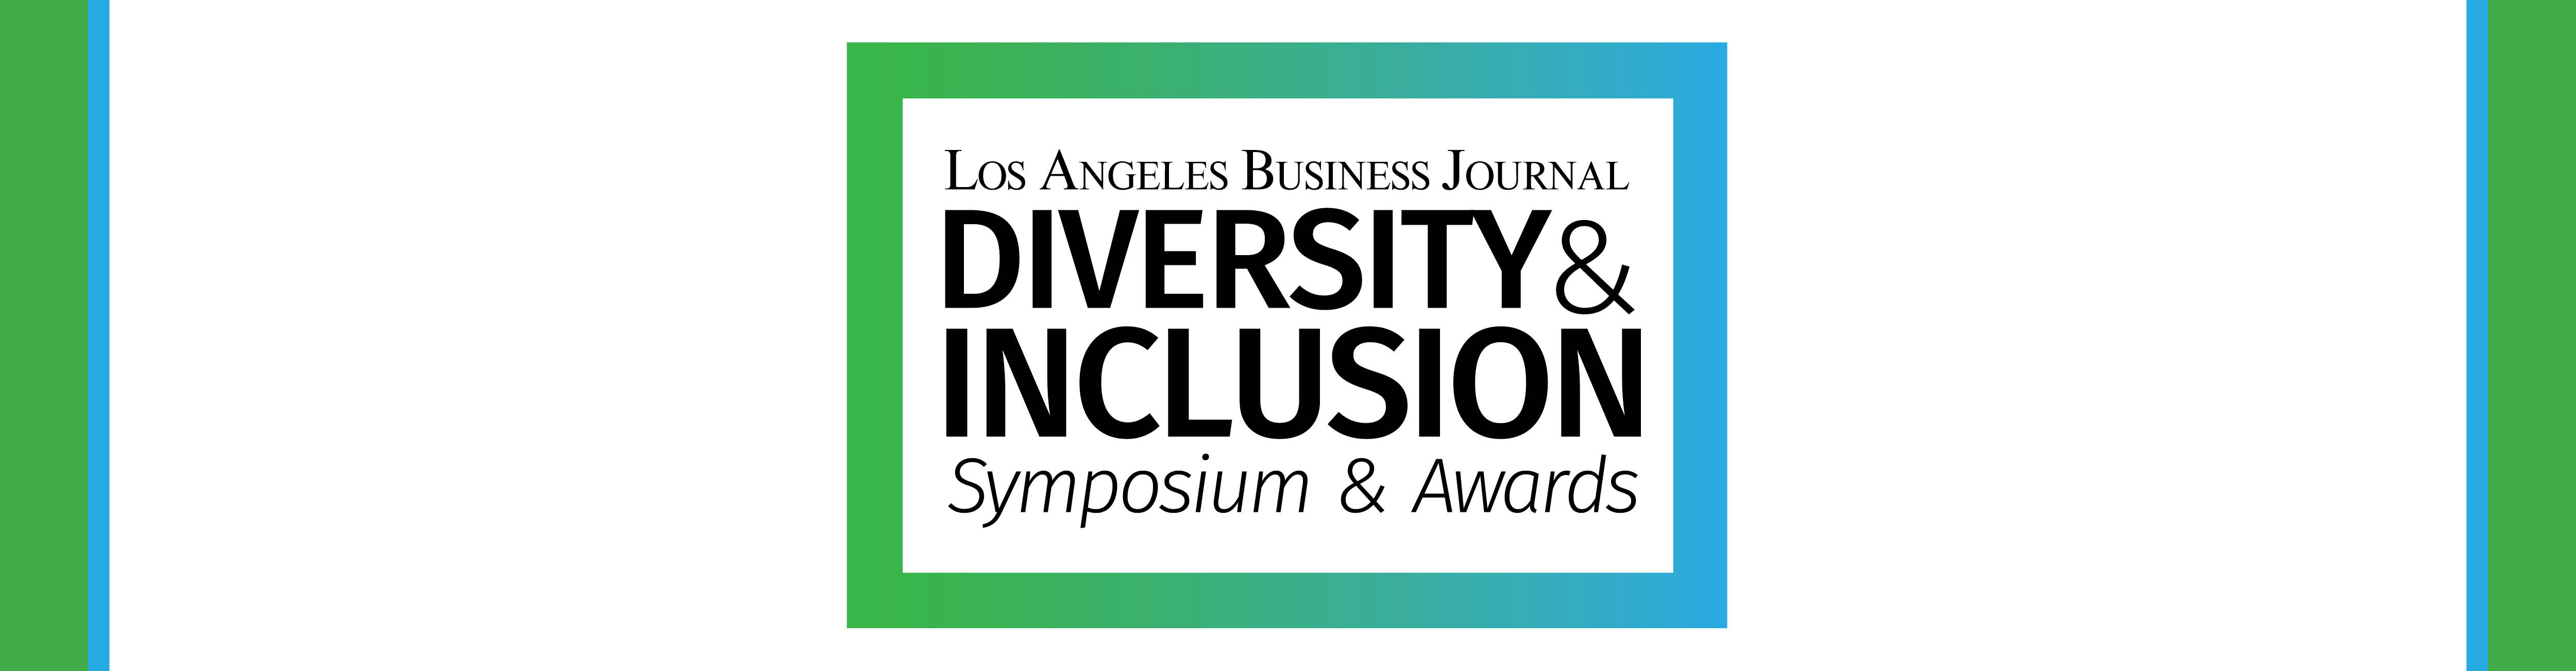 Los Angeles Business Journal Diversity and Inclusion Summit Event Banner